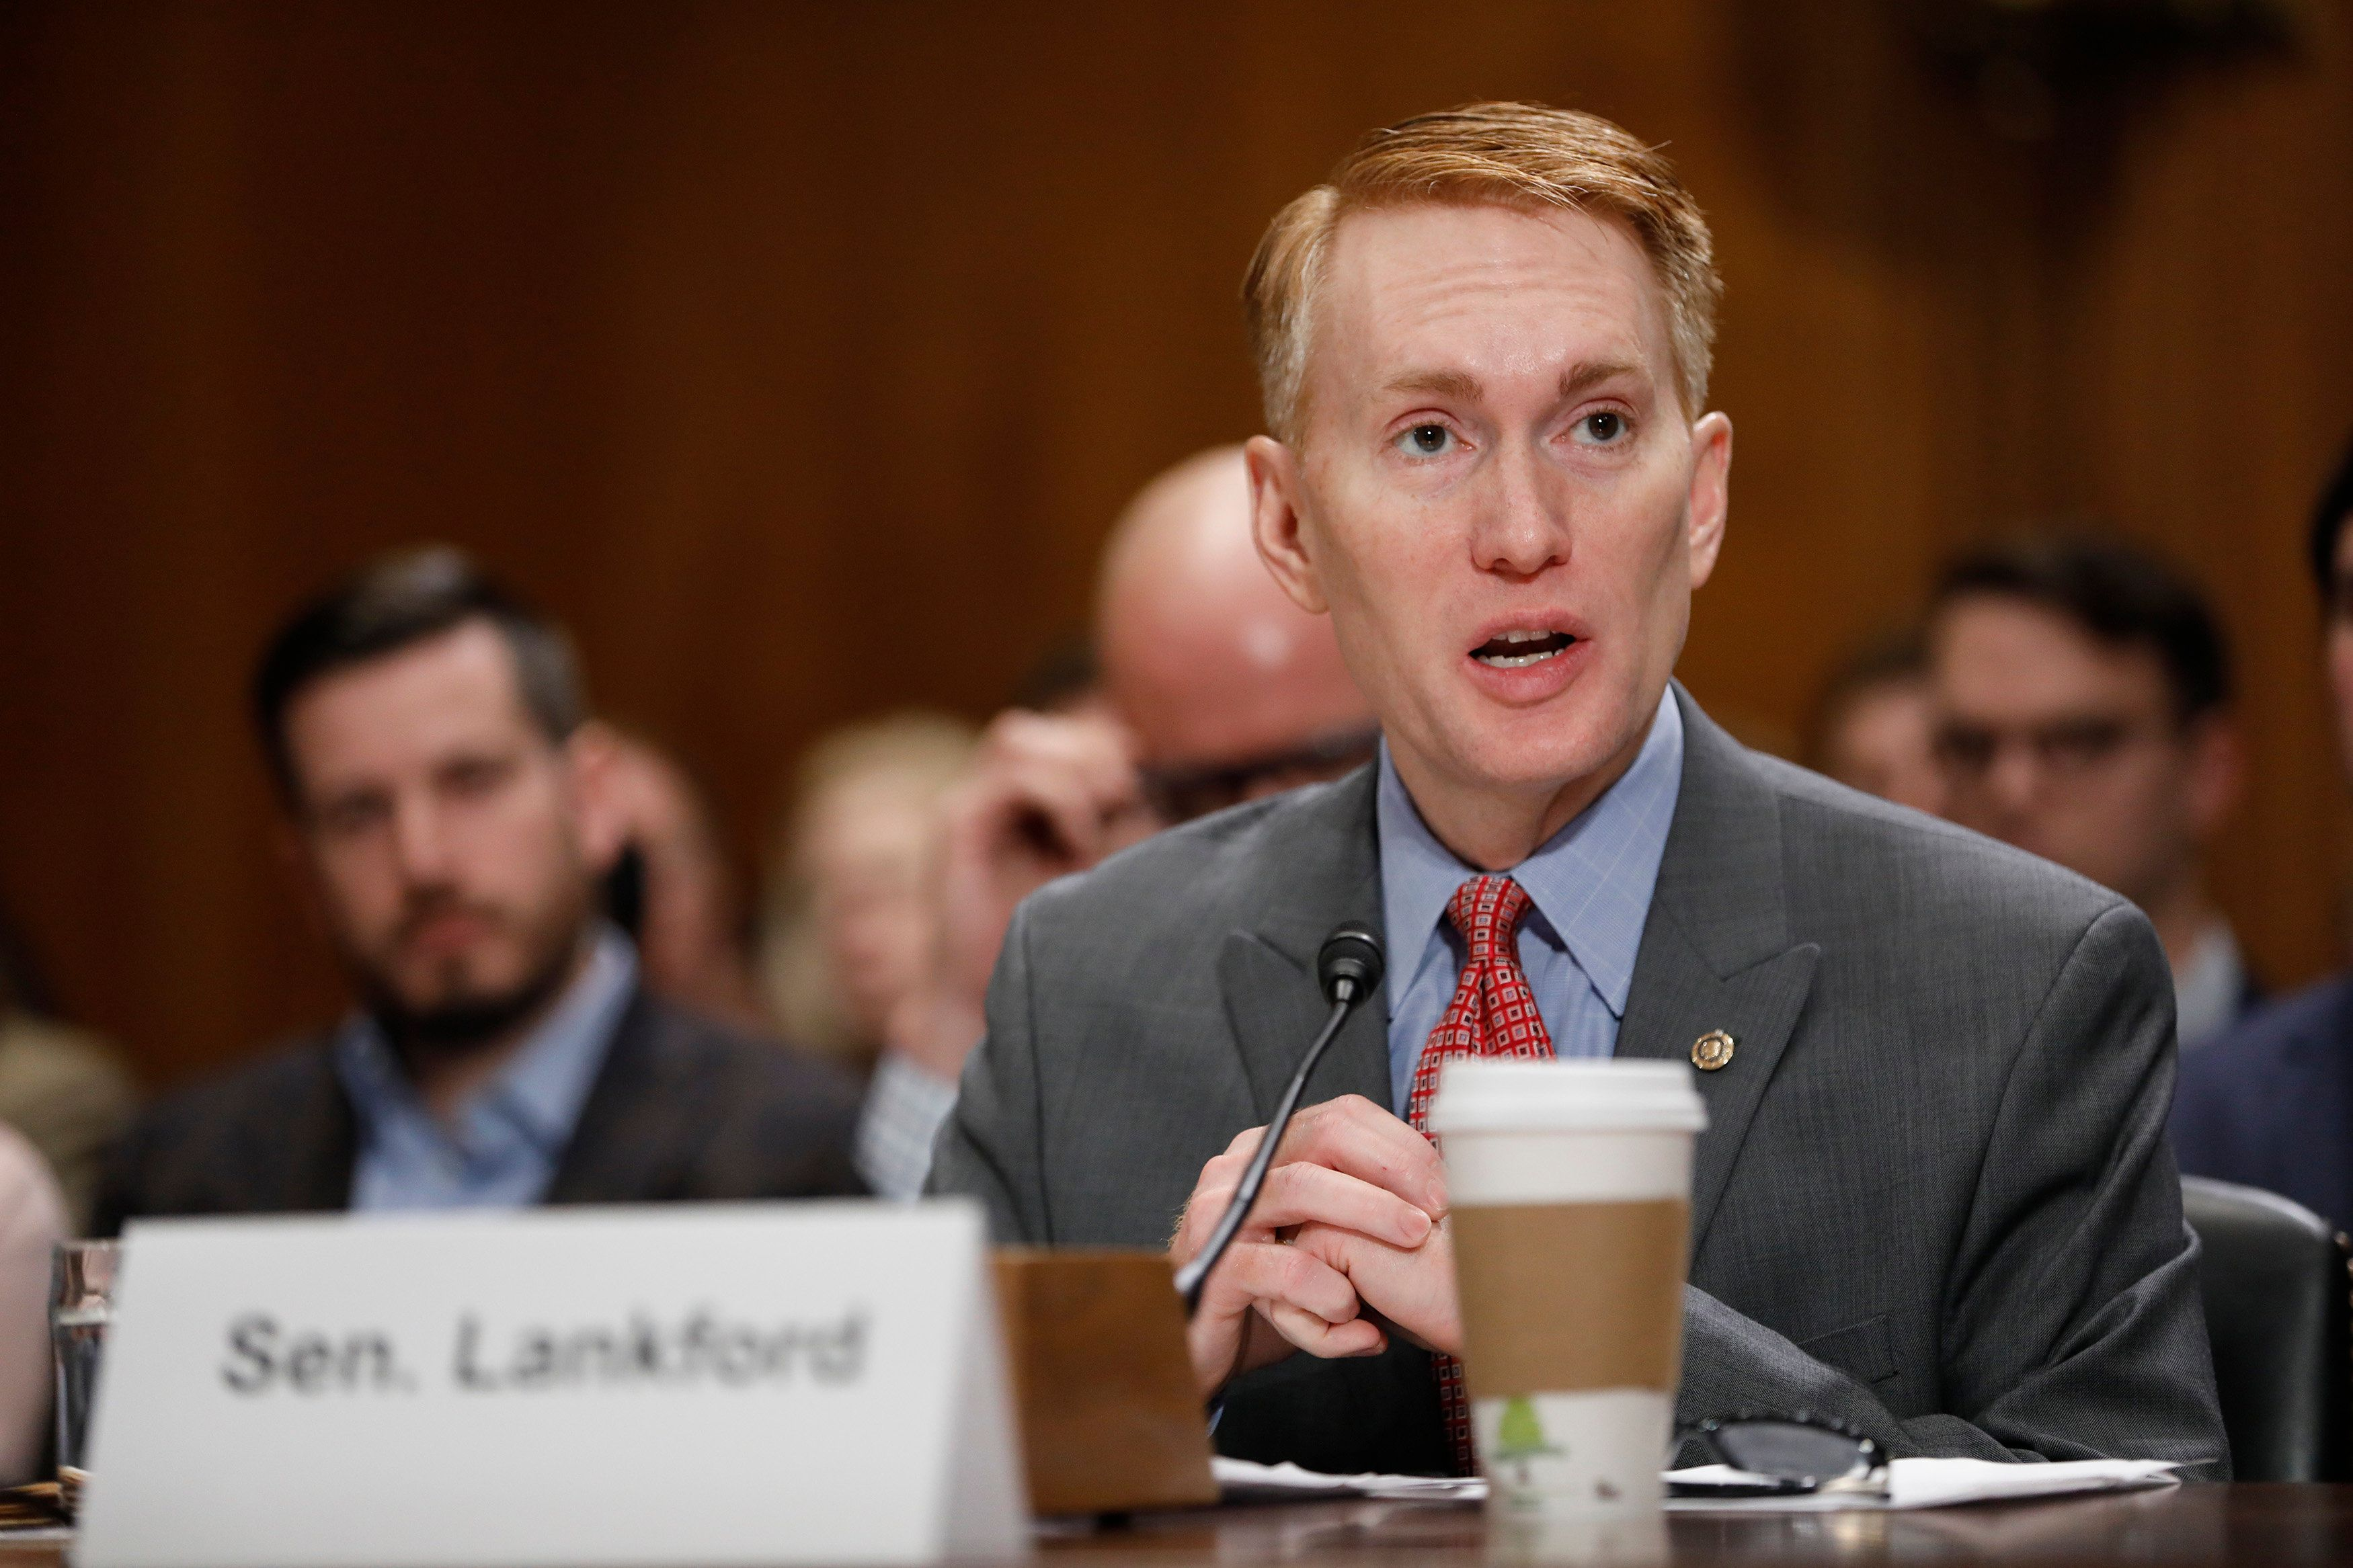 WASHINGTON, DC - JANUARY 18: Sen. James Lankford (R-OK) introduces Oklahoma Attorney General Scott Pruitt, President-elect Donald Trump's choice to head the Environmental Protection Agency, prior to his confirmation hearing before the Senate Committee on Environment and Public Works on Capitol Hill January 18, 2017 in Washington, DC. Pruitt is expected to face tough questioning about his stance on climate change and ties to the oil and gas industry.   (Photo by Aaron P. Bernstein/Getty Images)